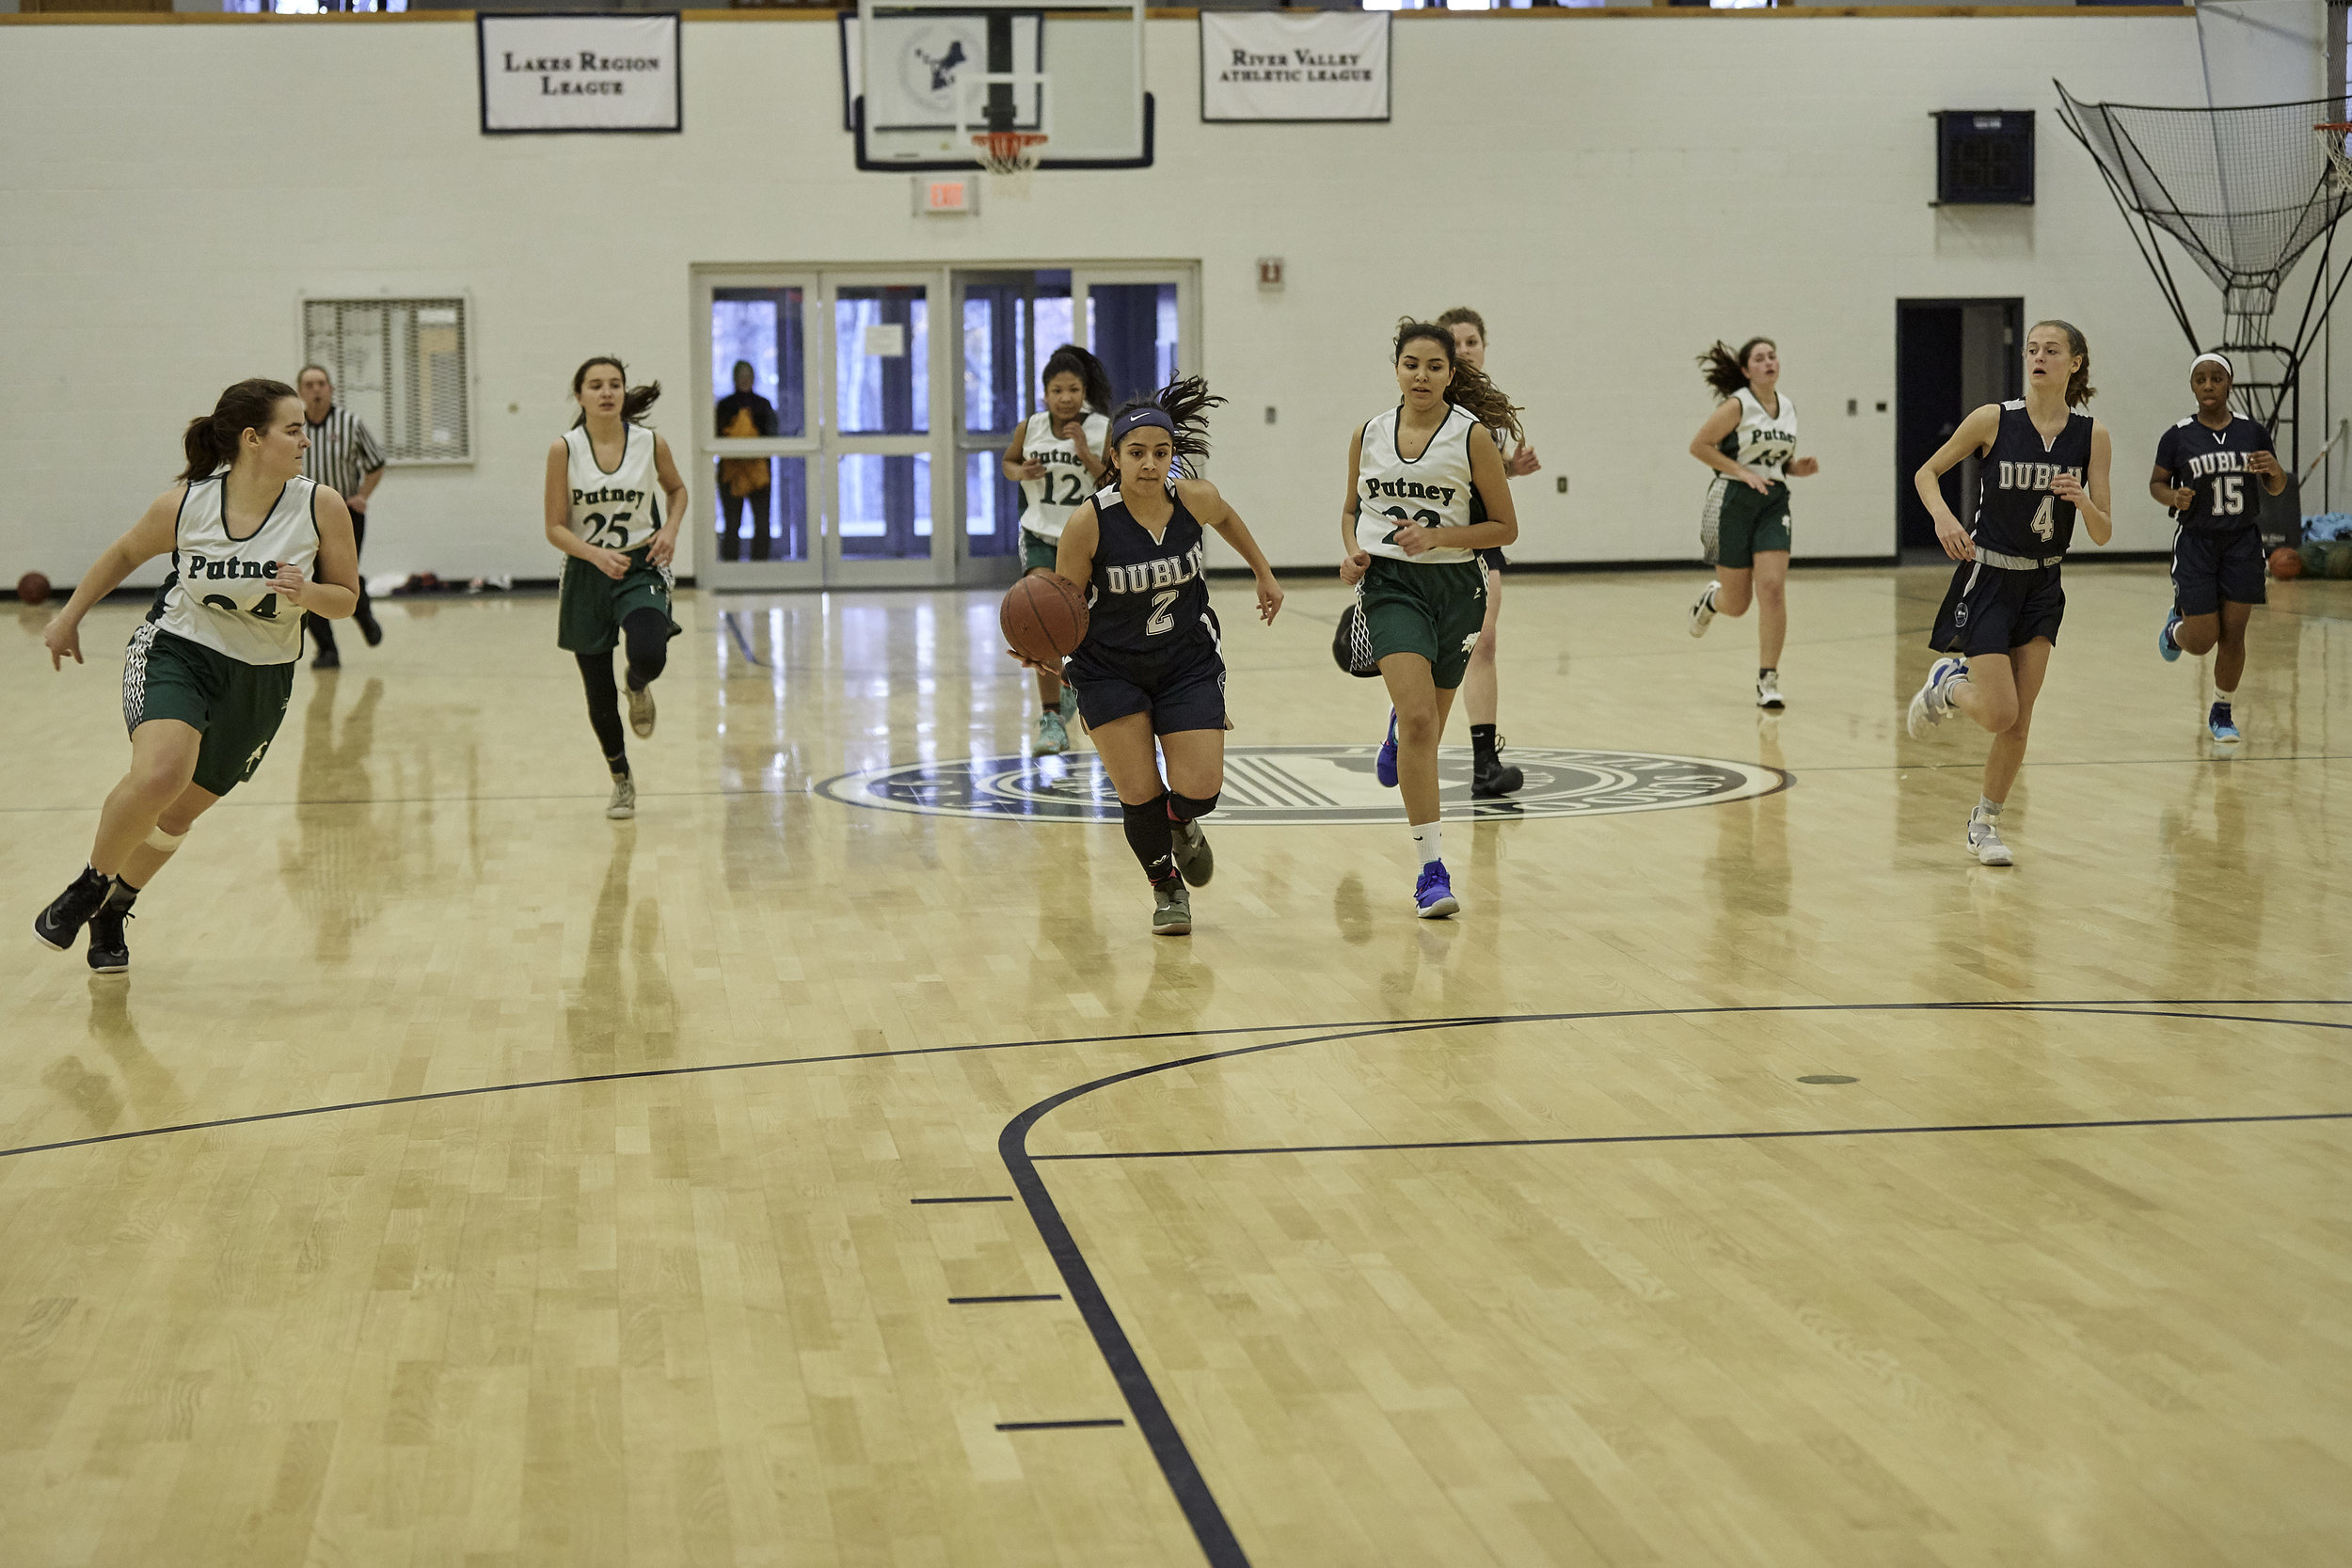 Basketball vs Putney School, February 9, 2019 - 167345.jpg